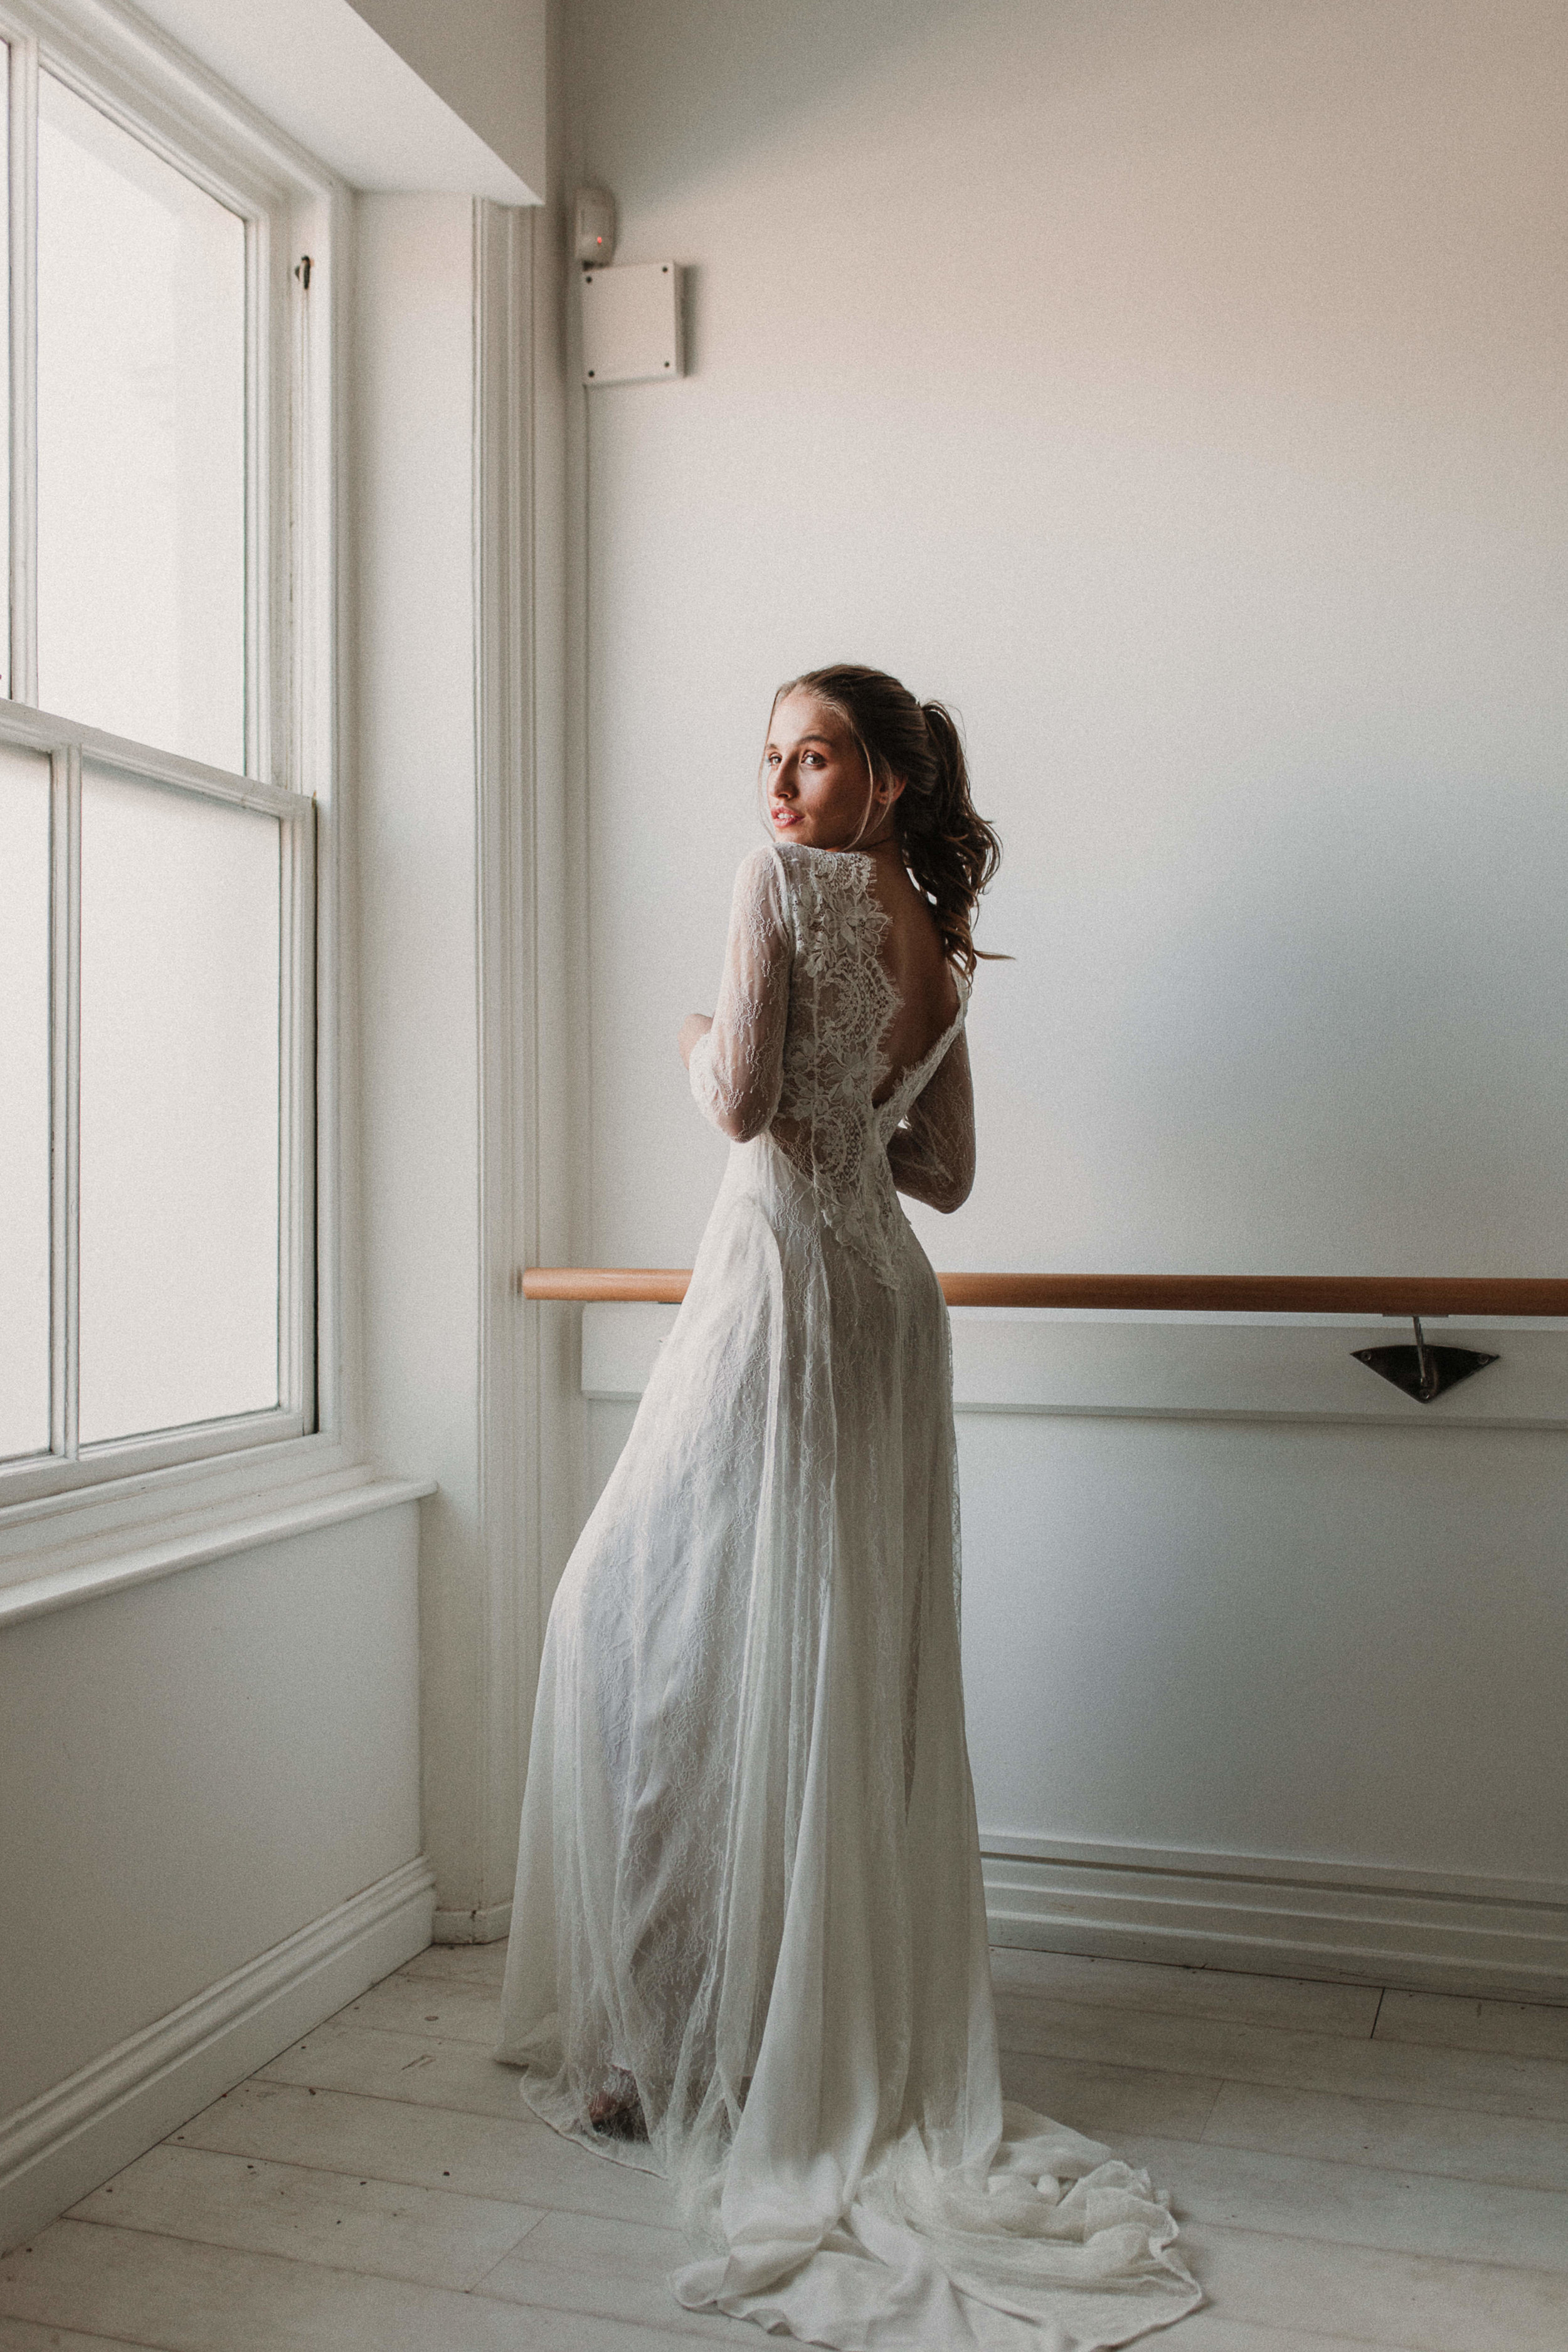 Luna Bride - One of our partners Luna Bride creates beautiful handmade wedding dresses from sustainable fabrics in Harrogate.Using luxurious natural and organic materials and stylish design, the Luna look combines elegance with comfort, opulence with simplicity, and tradition with fashion.With a romantic heart in classic sophistication and an expert eye on feminine fun, the Luna collection dances with magic and mystery as the Luna bride sparkles with individuality and independence.